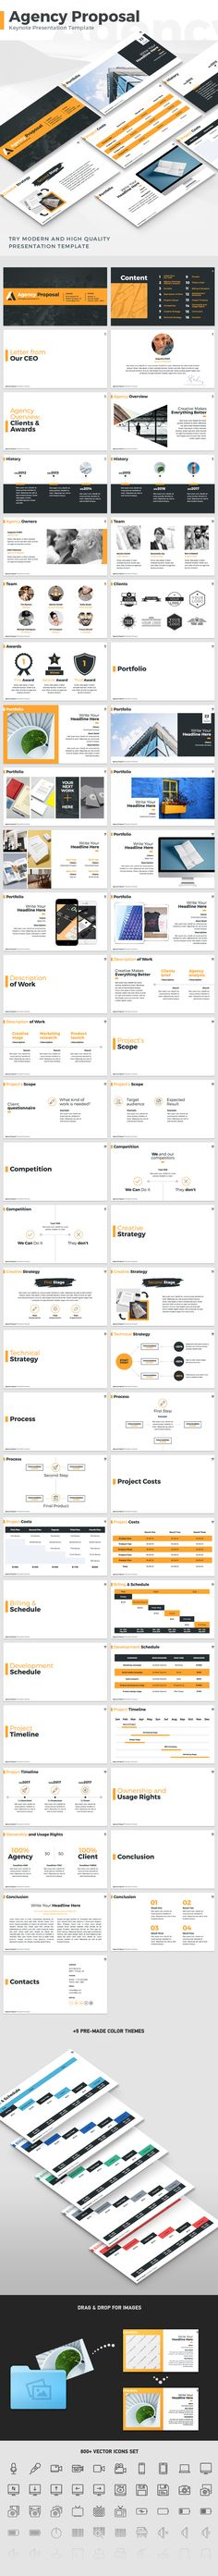 Agency Proposal Keynote Presentation Template #keynote #presentation template • Download ➝ https://graphicriver.net/item/agency-proposal-keynote-presentation-template/18393177?ref=pxcr